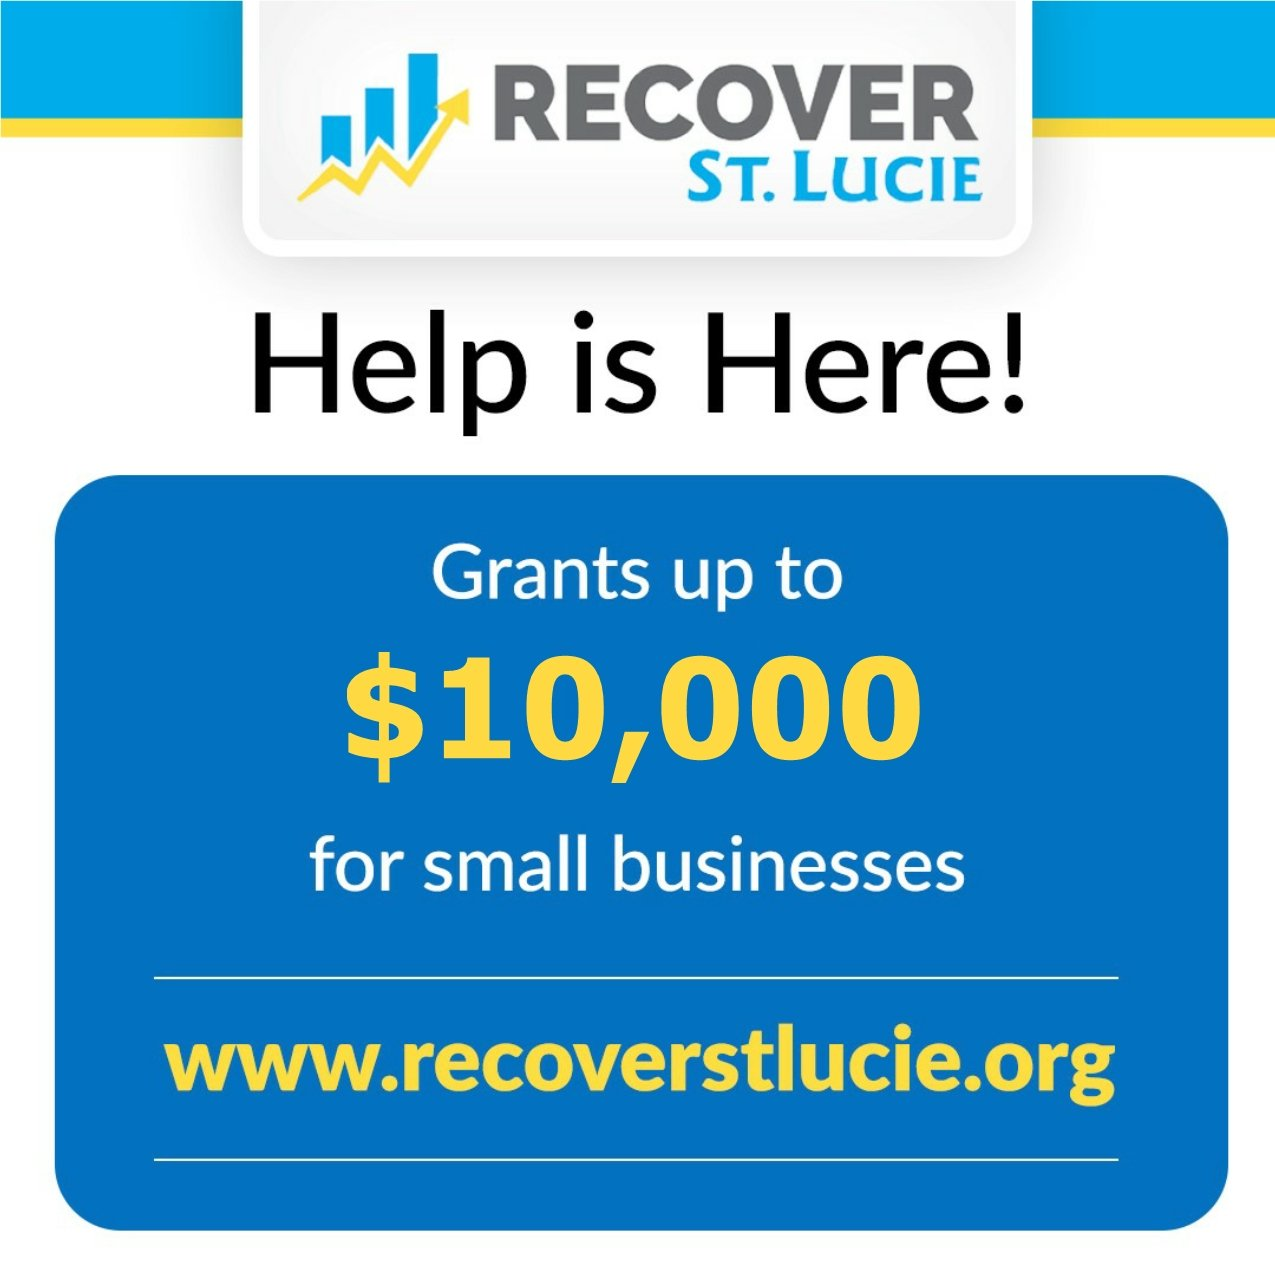 Recover St. Lucie Relief Grants Small Business Graphic